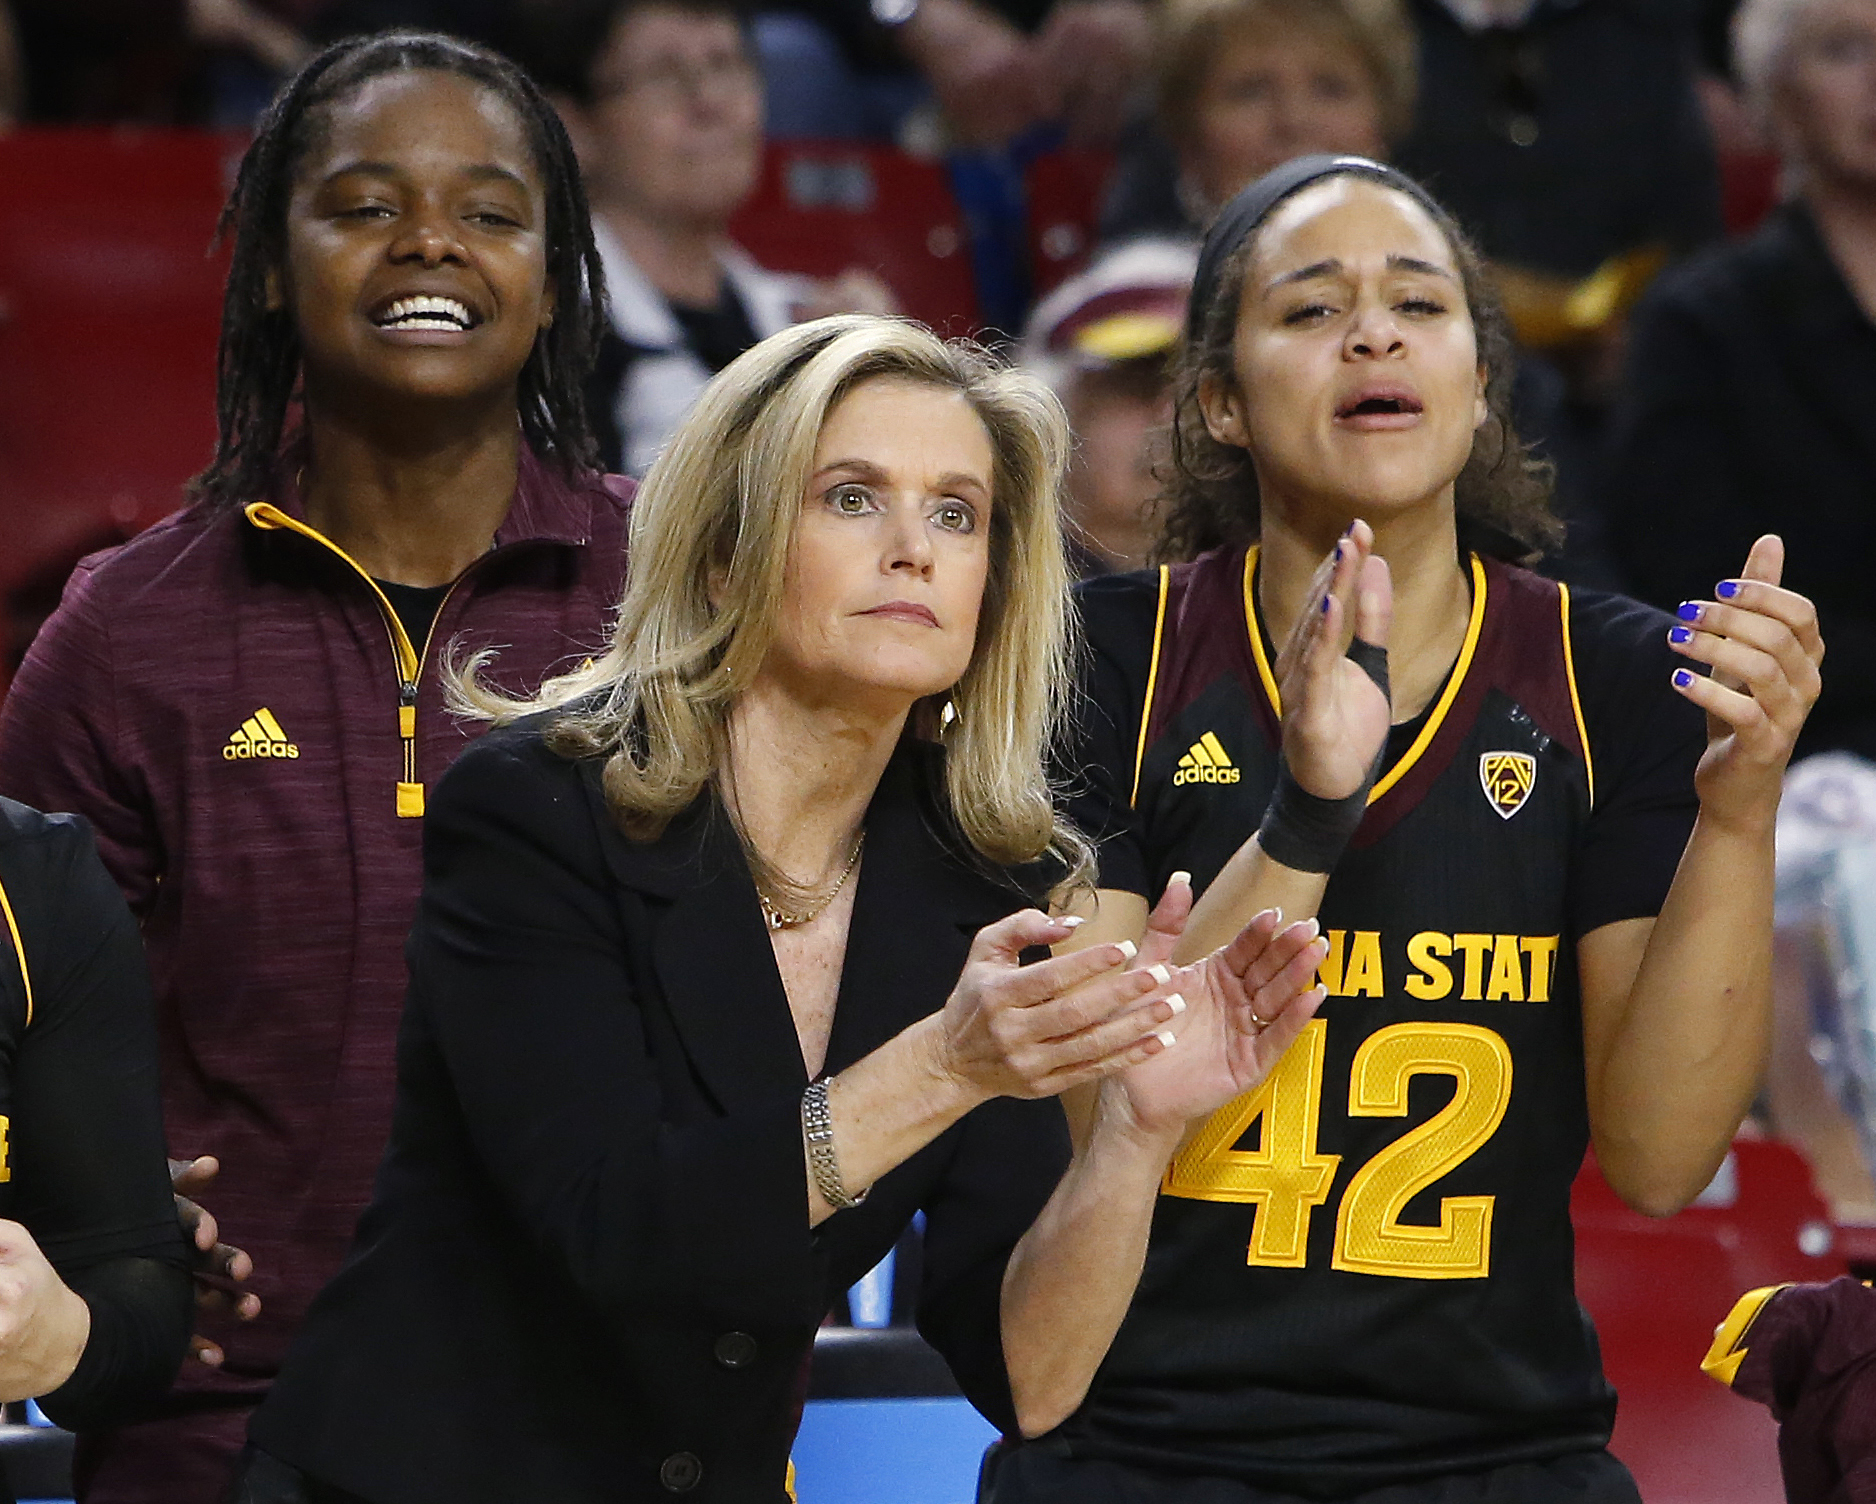 FILE - In this Feb. 5, 2016, file photo, Arizona State coach Charli Turner Thorne and players watch during the team's game against UCLA in Tempe, Ariz. Arizona State played Syracuse, Washington and Oregon State this seasonthree of the teams in the Final F